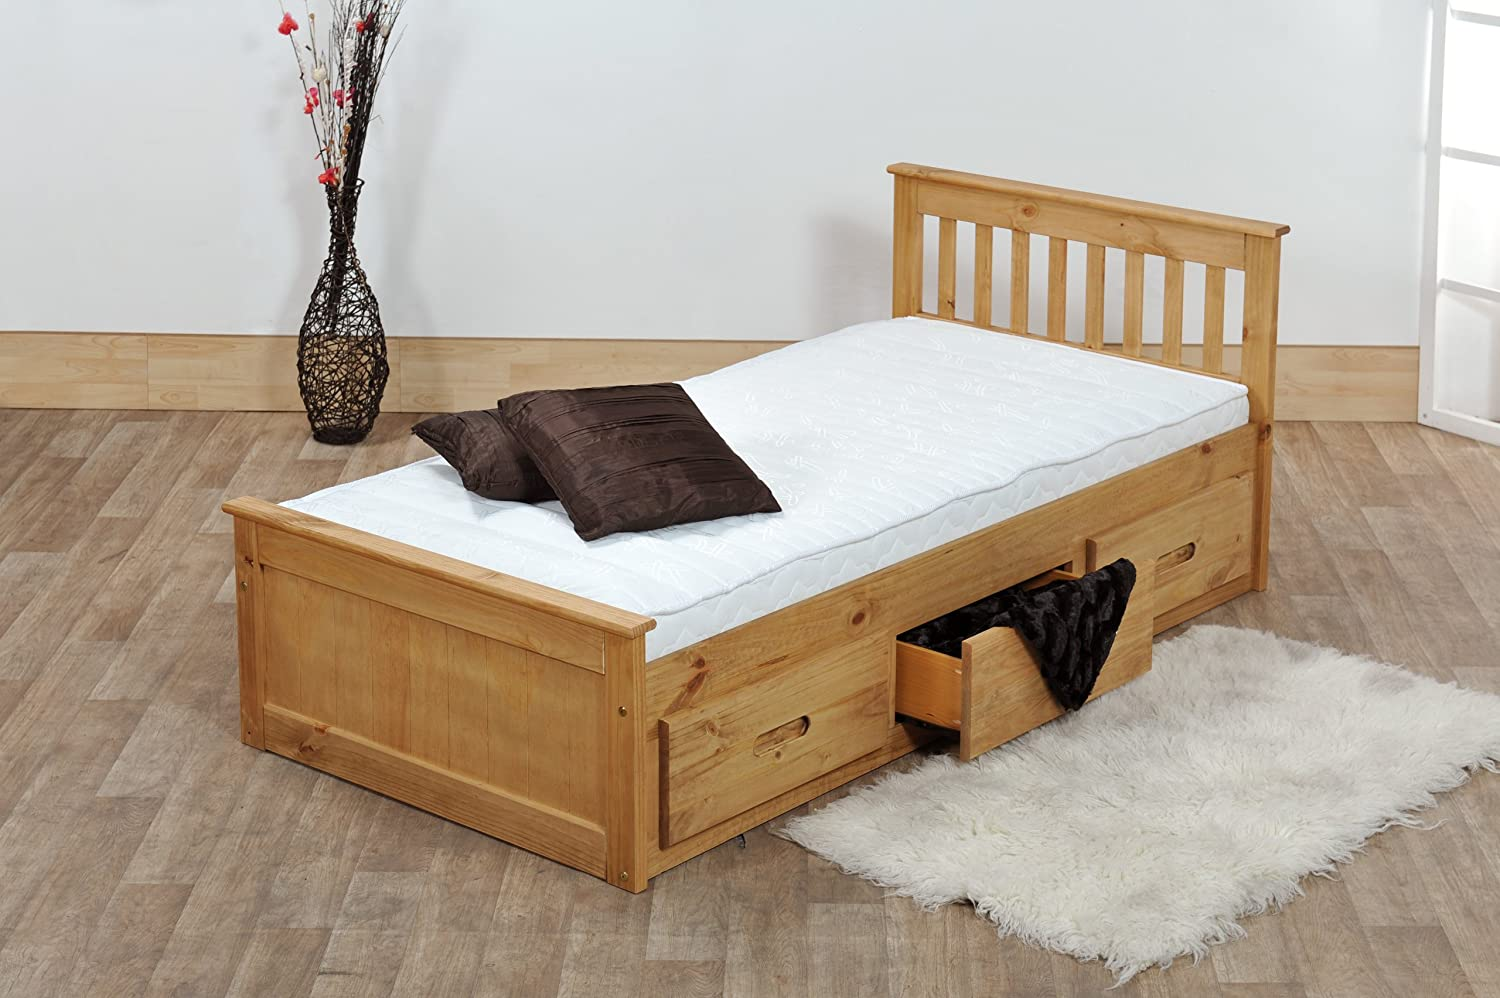 Wooden Beds With Storage ~ Kids beds ft pine captains bed with underbed